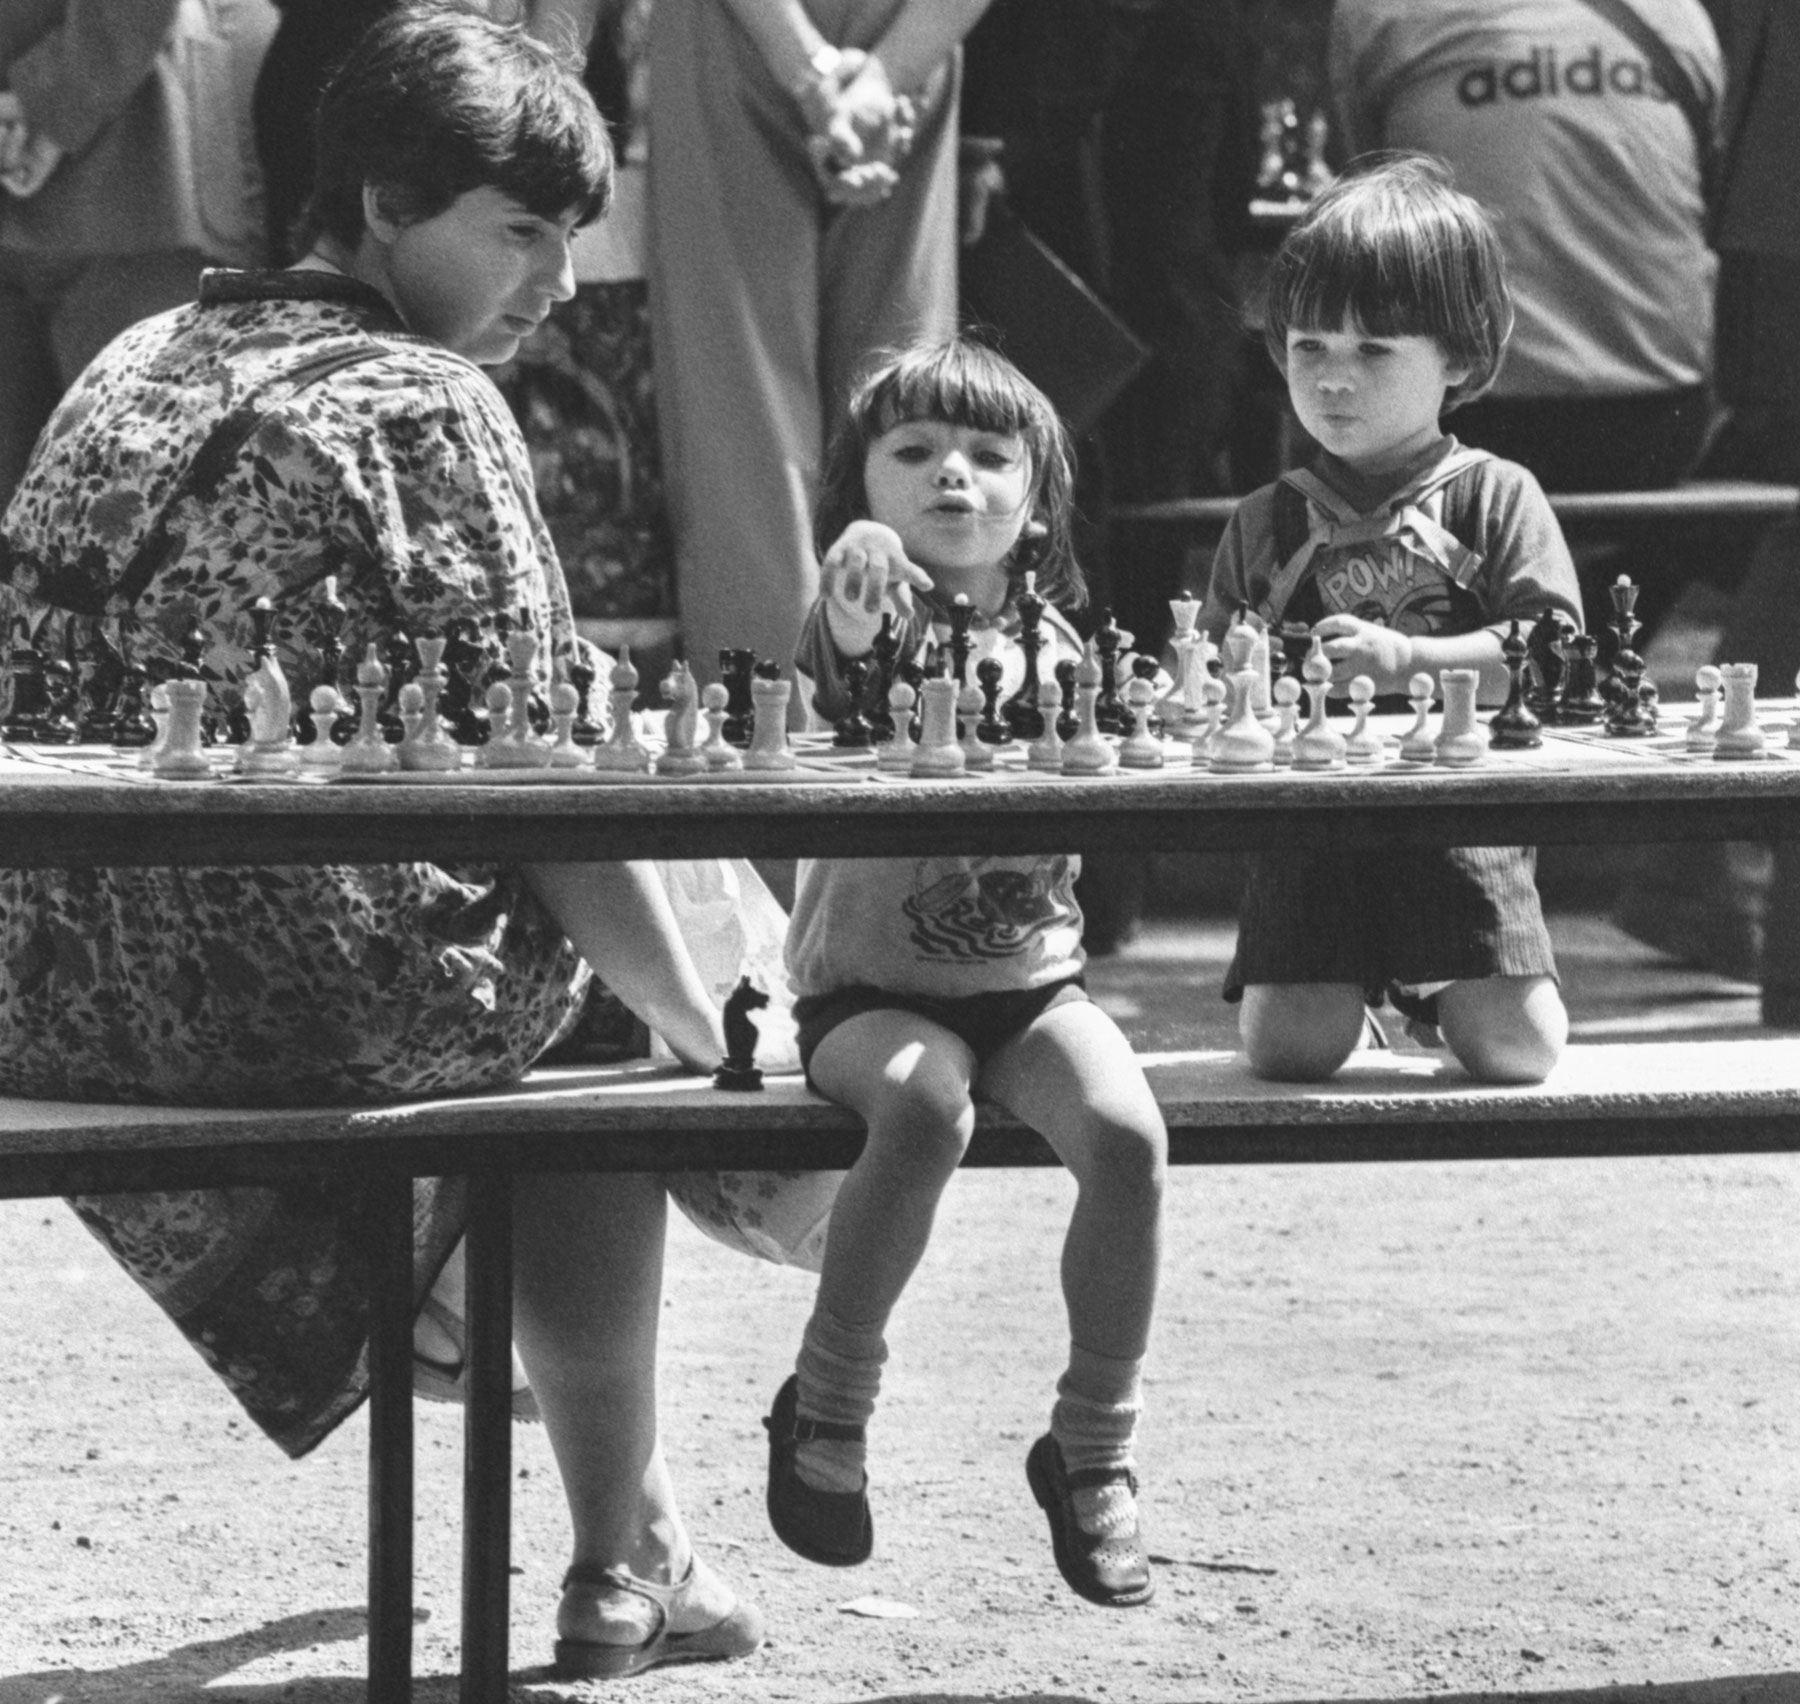 1988. Young participants in an open-air chess festival in Moscow.